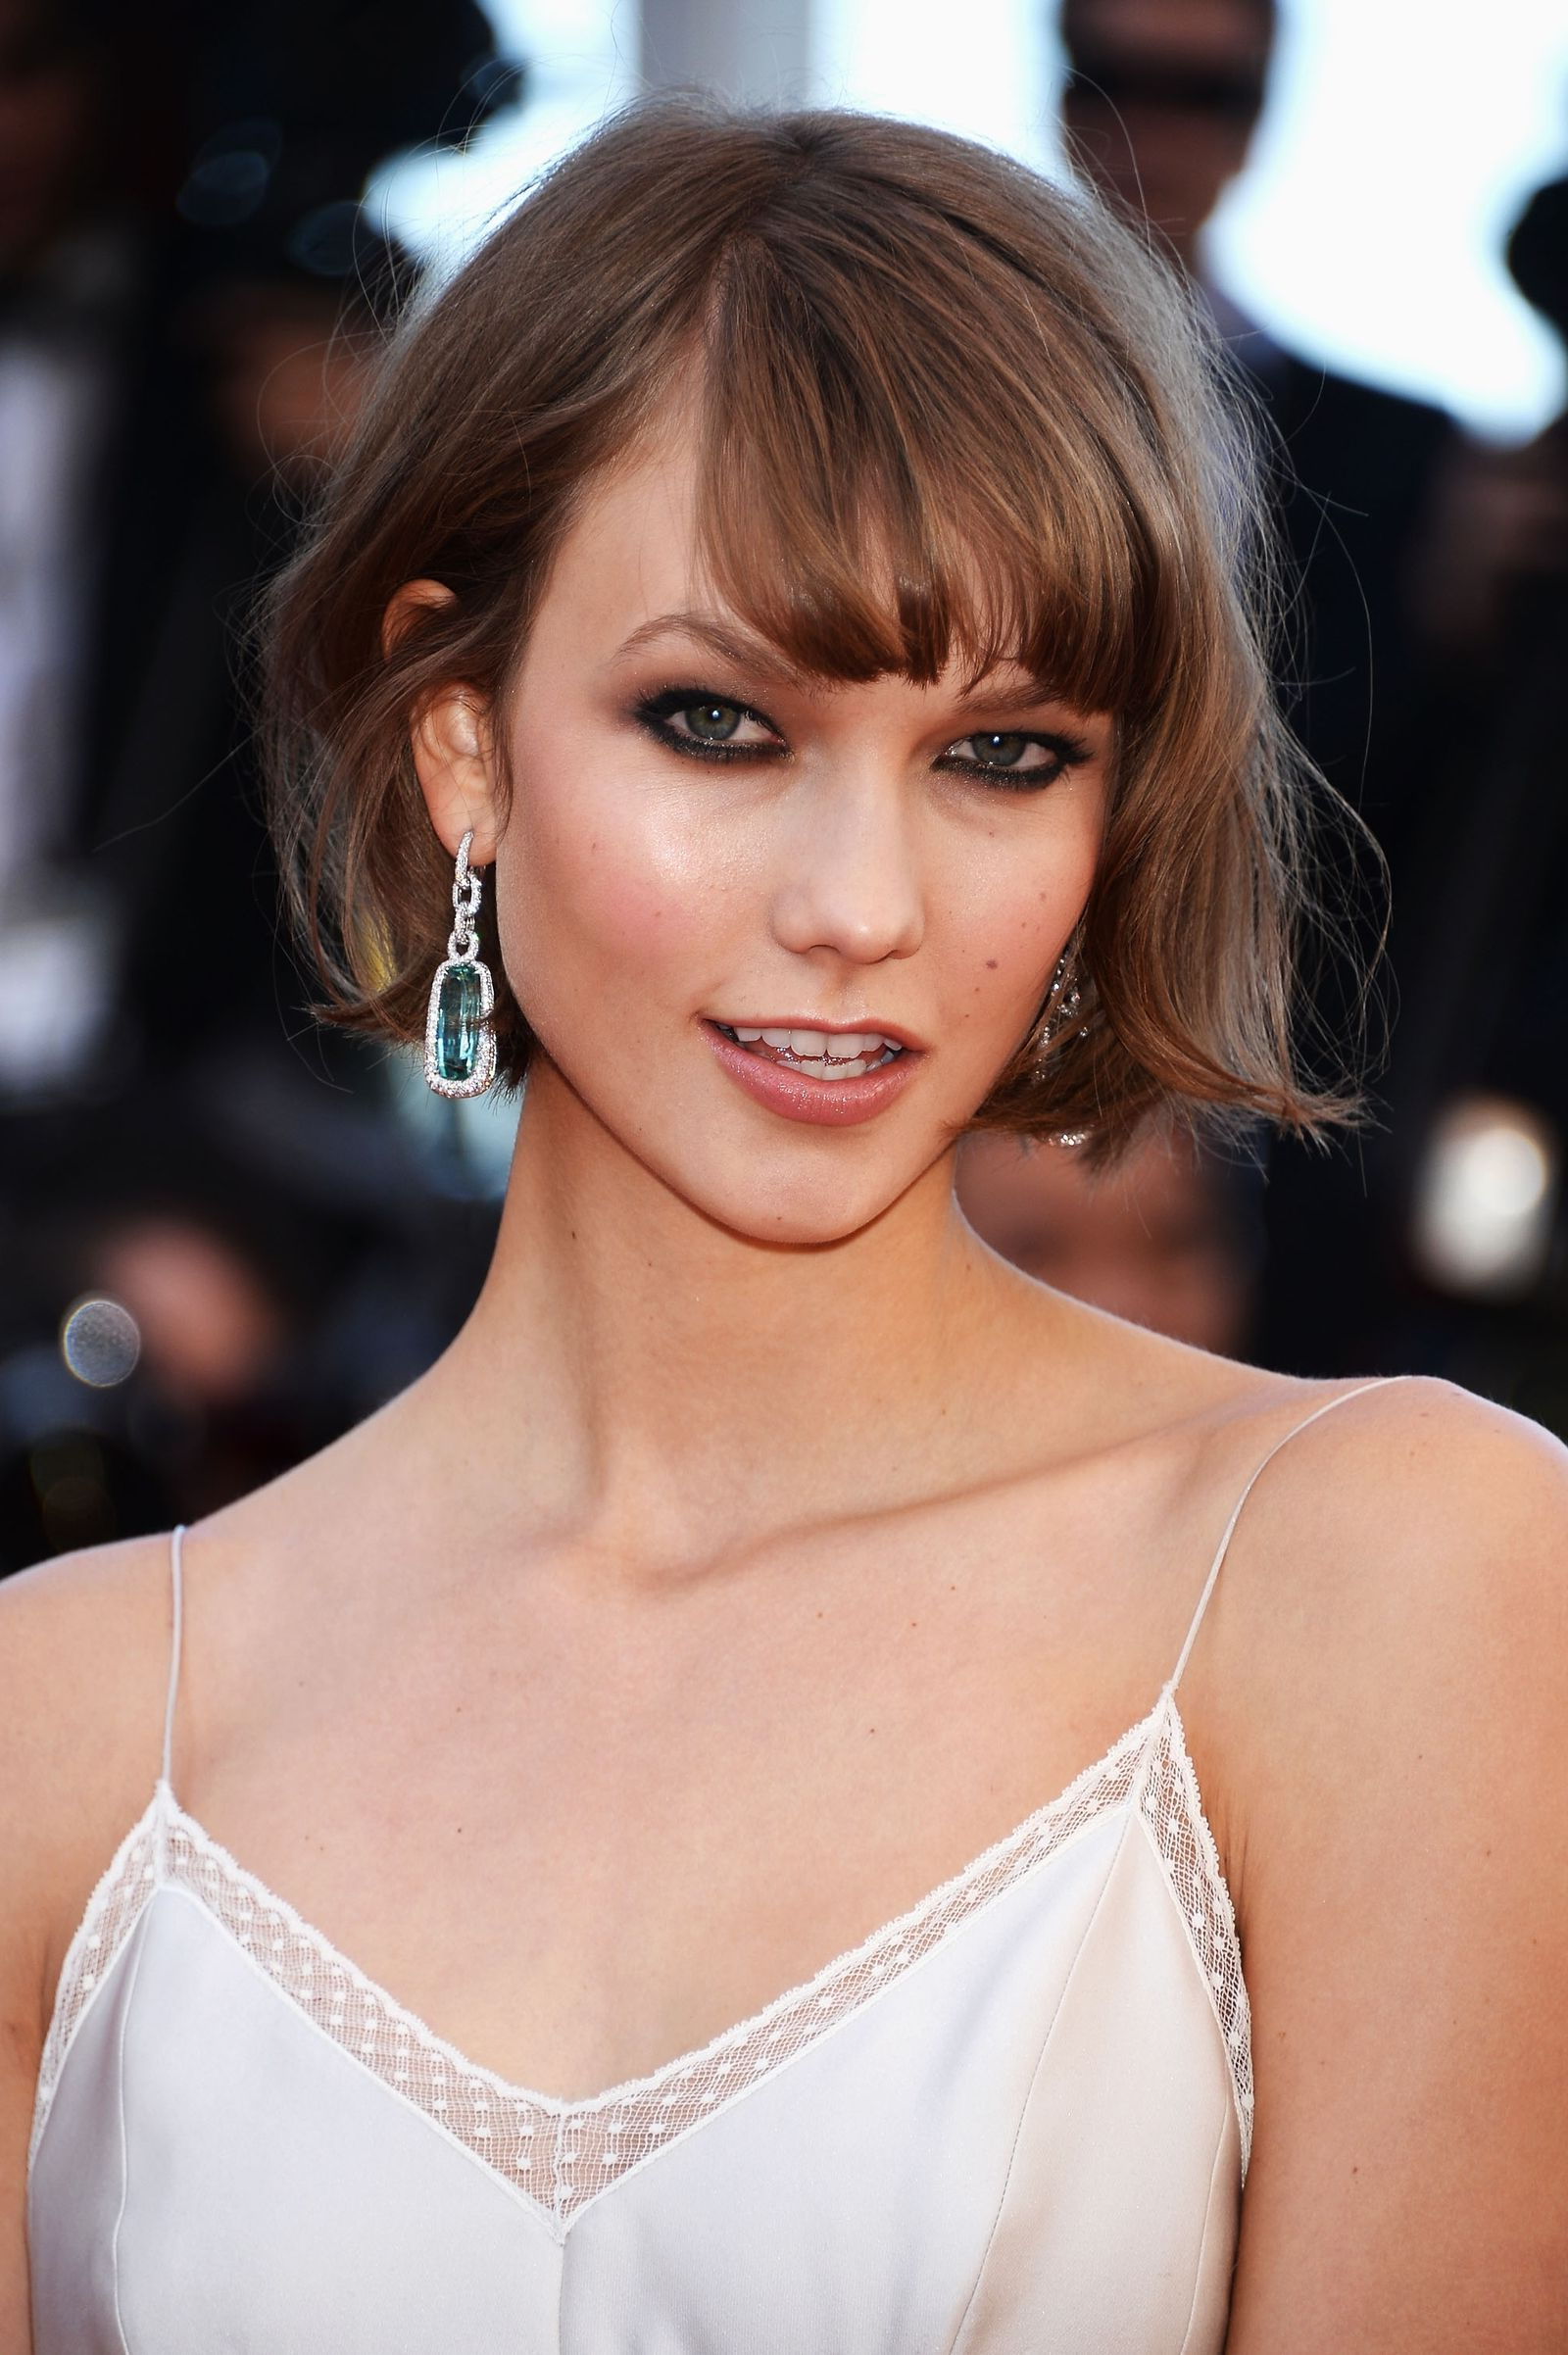 26 Perfectly Swoopy Side Bangs That Are Worth The Extra Maintenance Within Short Hairstyles With Flicks (View 1 of 20)